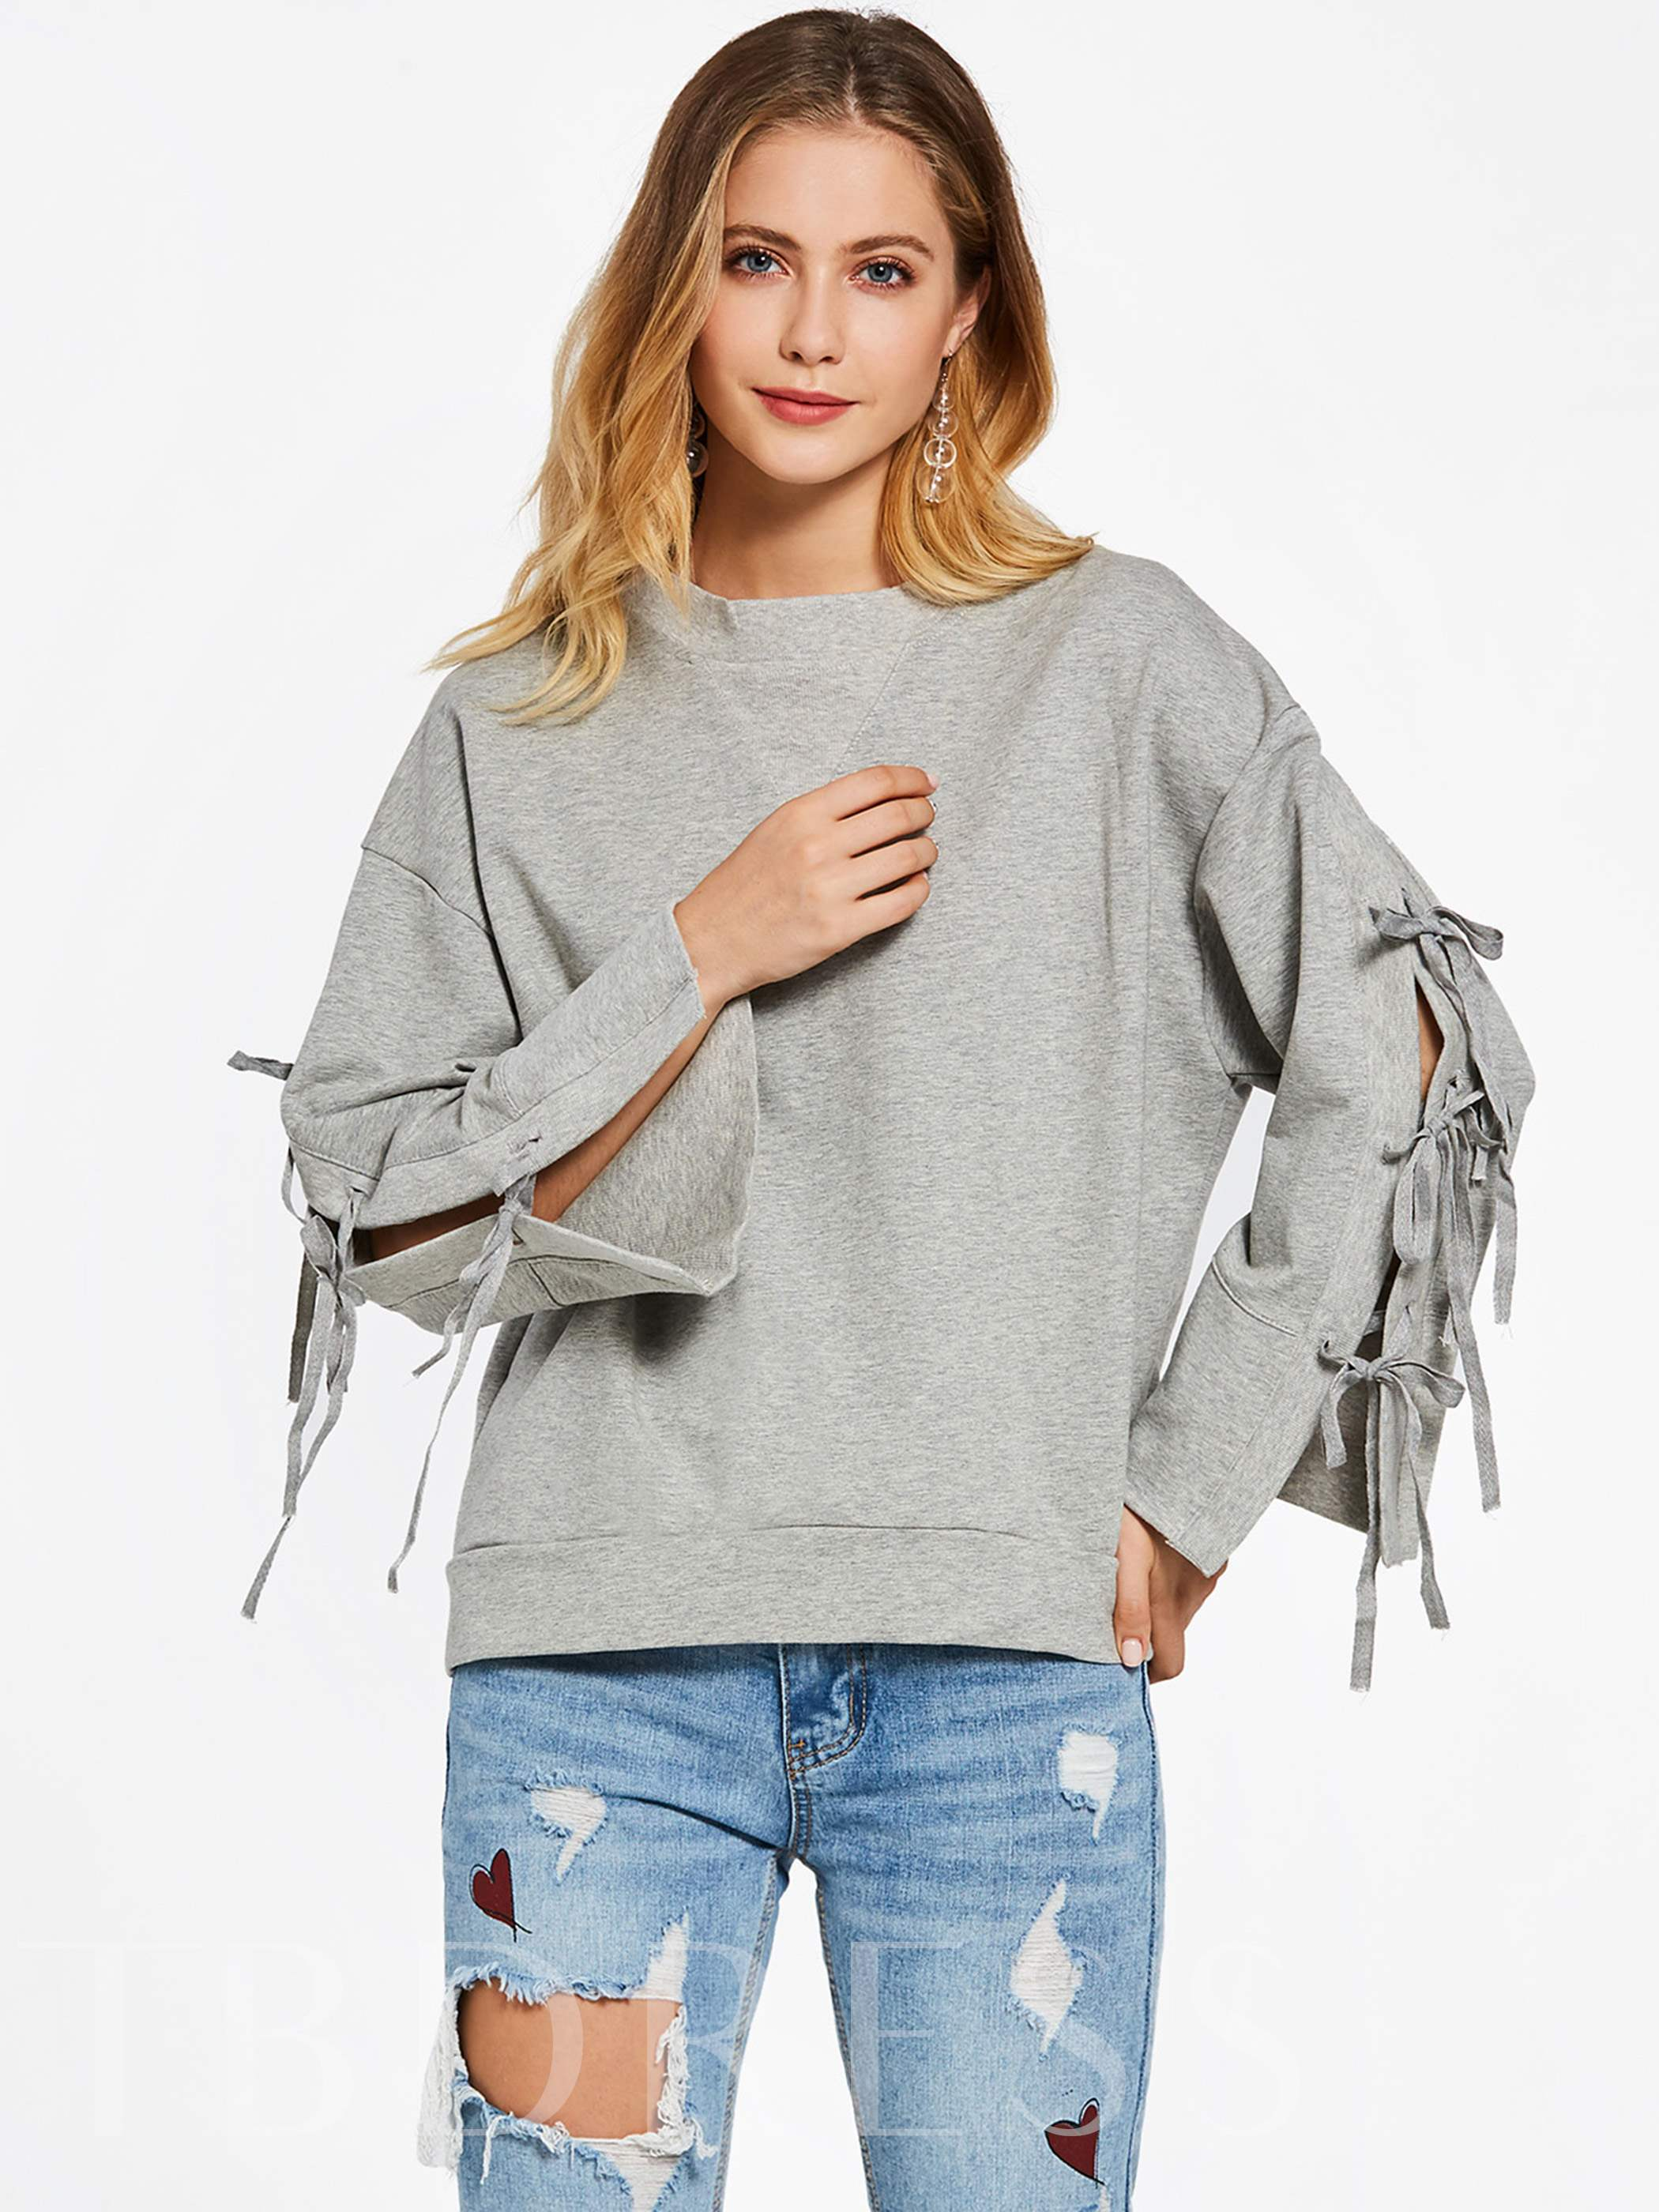 Buy Round Neck Tassels Pullover Women's Hoodie, Young17, 12995098 for $6.98 in TBDress store